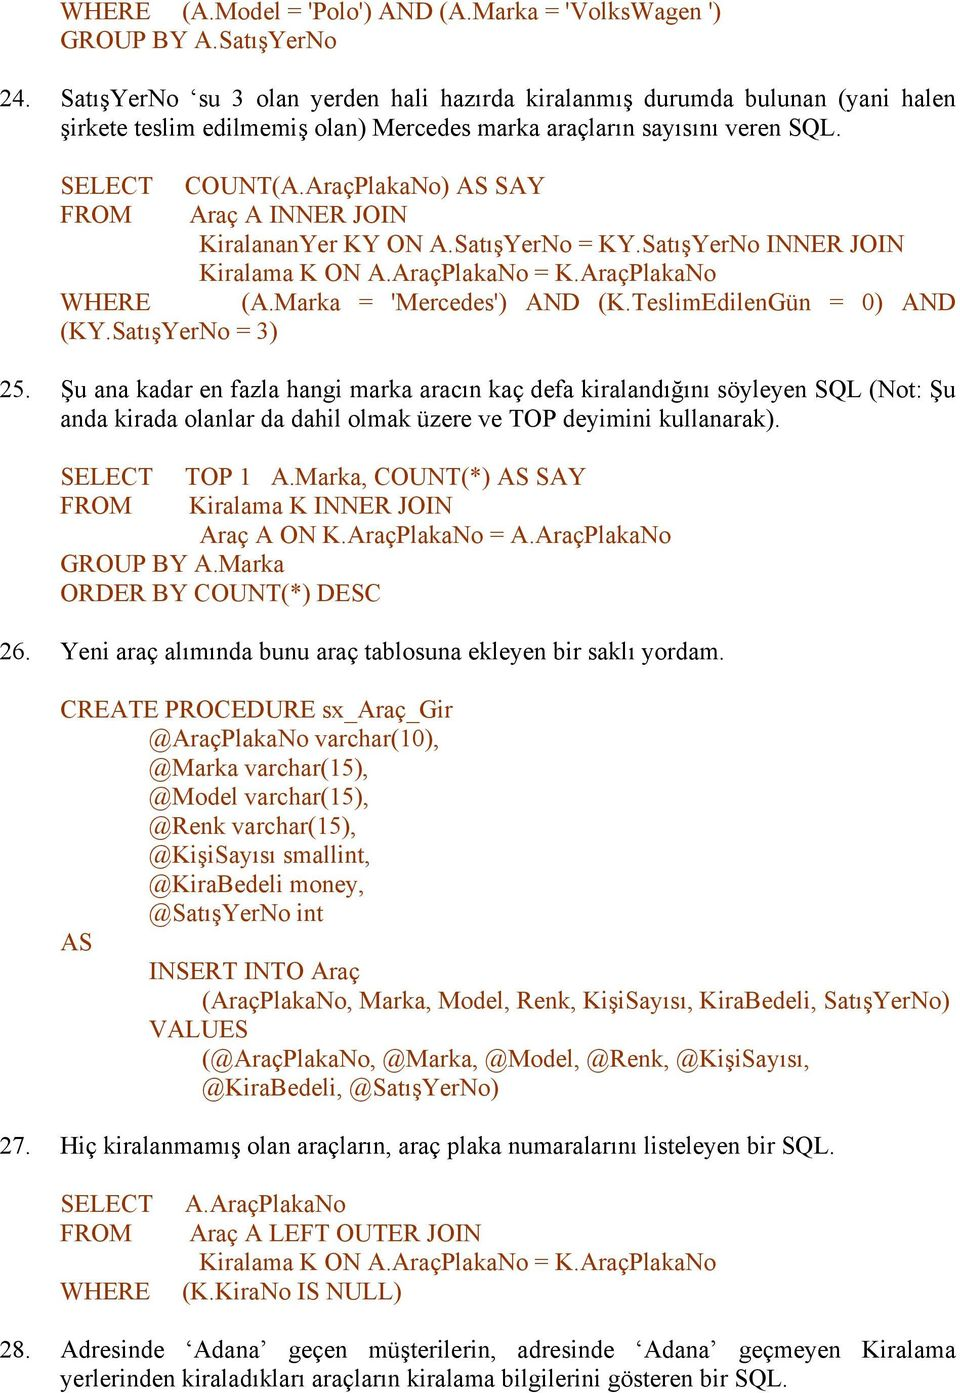 AraçPlakaNo) SAY Araç A INNER JOIN KiralananYer KY ON A.SatışYerNo = KY.SatışYerNo INNER JOIN WHERE (A.Marka = 'Mercedes') AND (K.TeslimEdilenGün = 0) AND (KY.SatışYerNo = 3) 25.